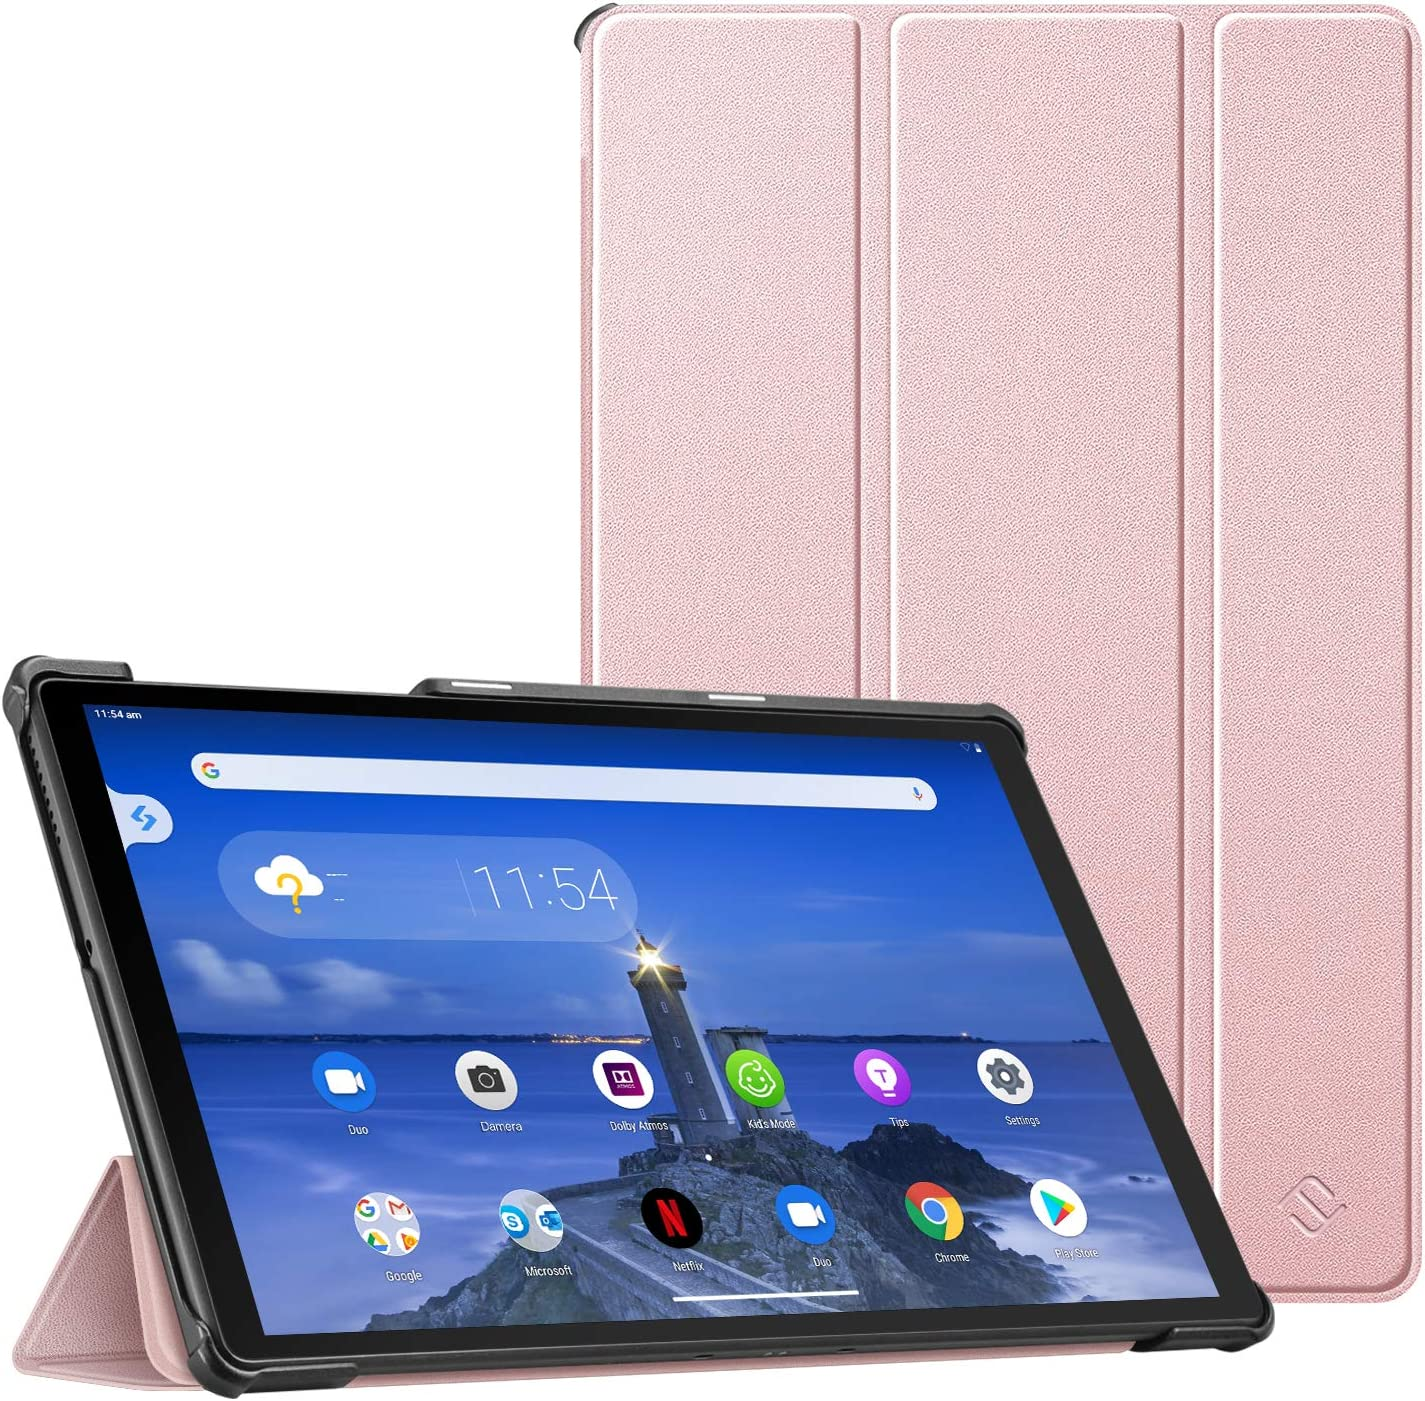 CaseBot Case for Lenovo Tab M10 Plus, Lightweight Slim Shell Stand Cover with Auto Sleep/Wake for Lenovo Tab M10 Plus TB-X606F / TB-X606X 10.3 Inch Tablet, Rose Gold